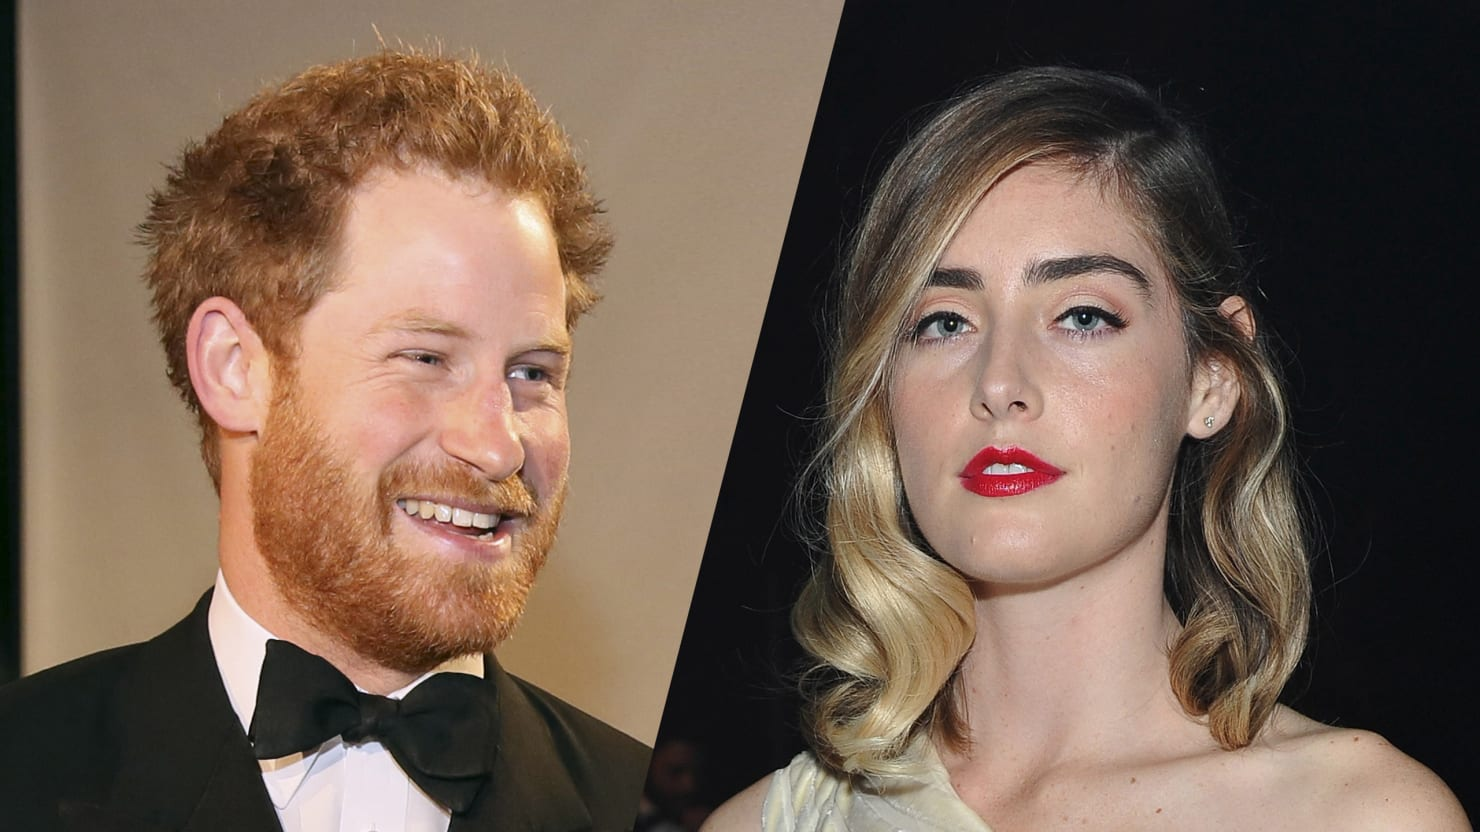 Juliette labelle dating prince harry